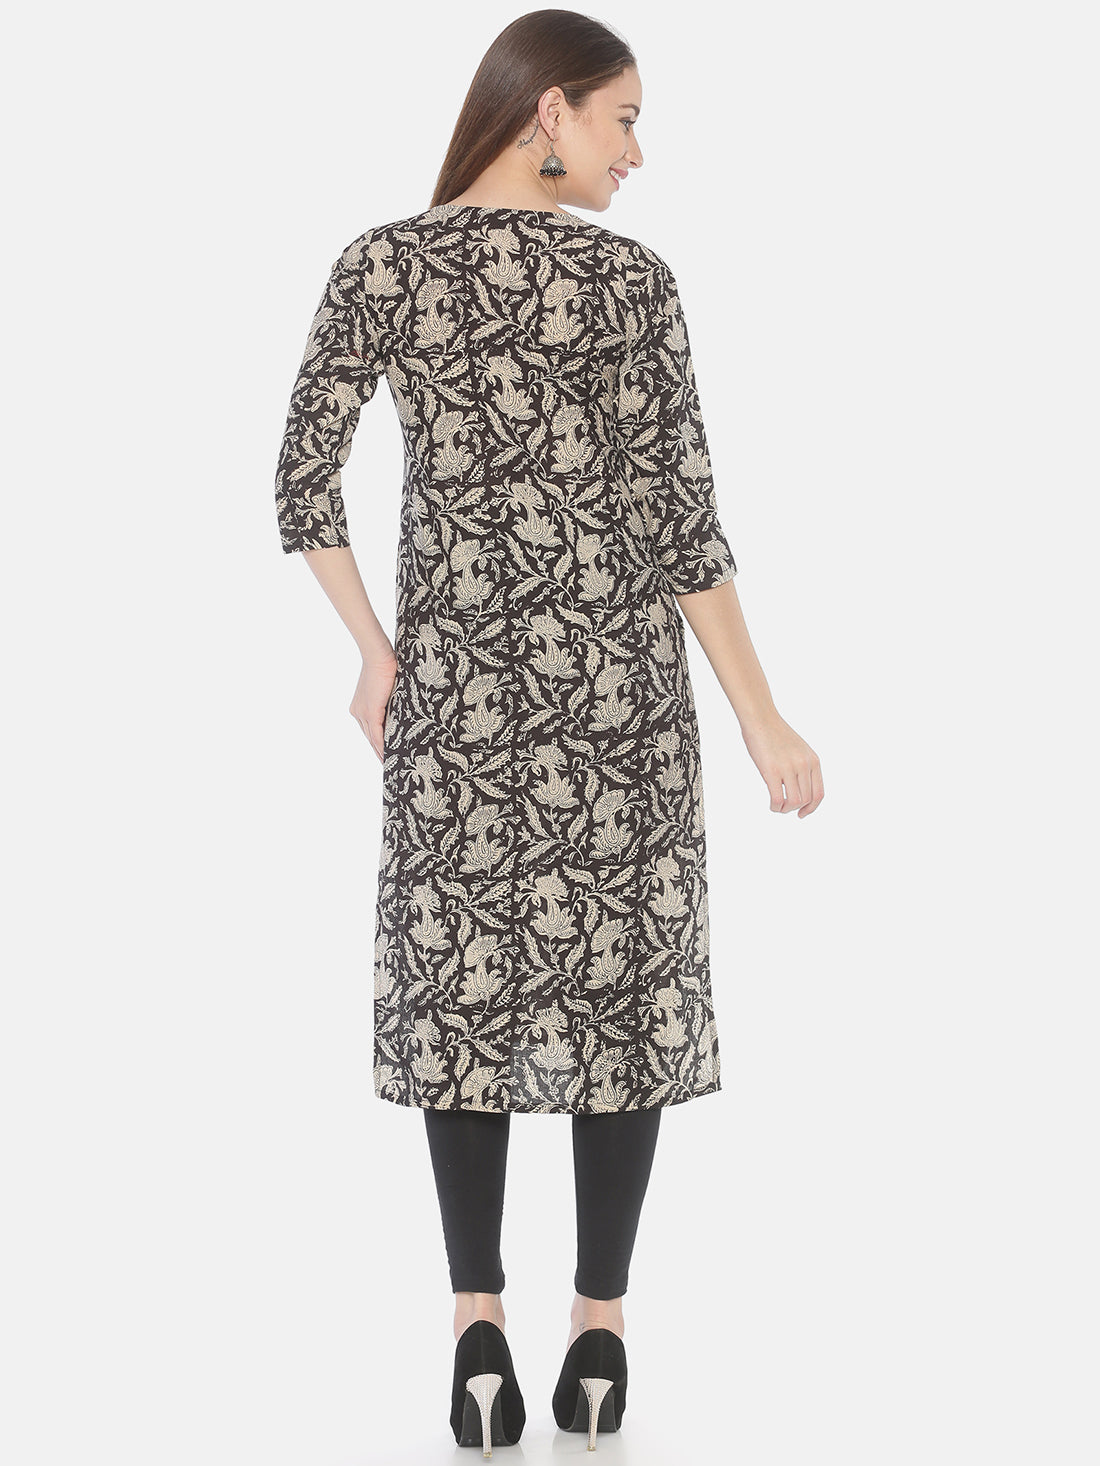 Black Bagru Hand Block Printed Naturally Dyed Pure Cotton Kurti